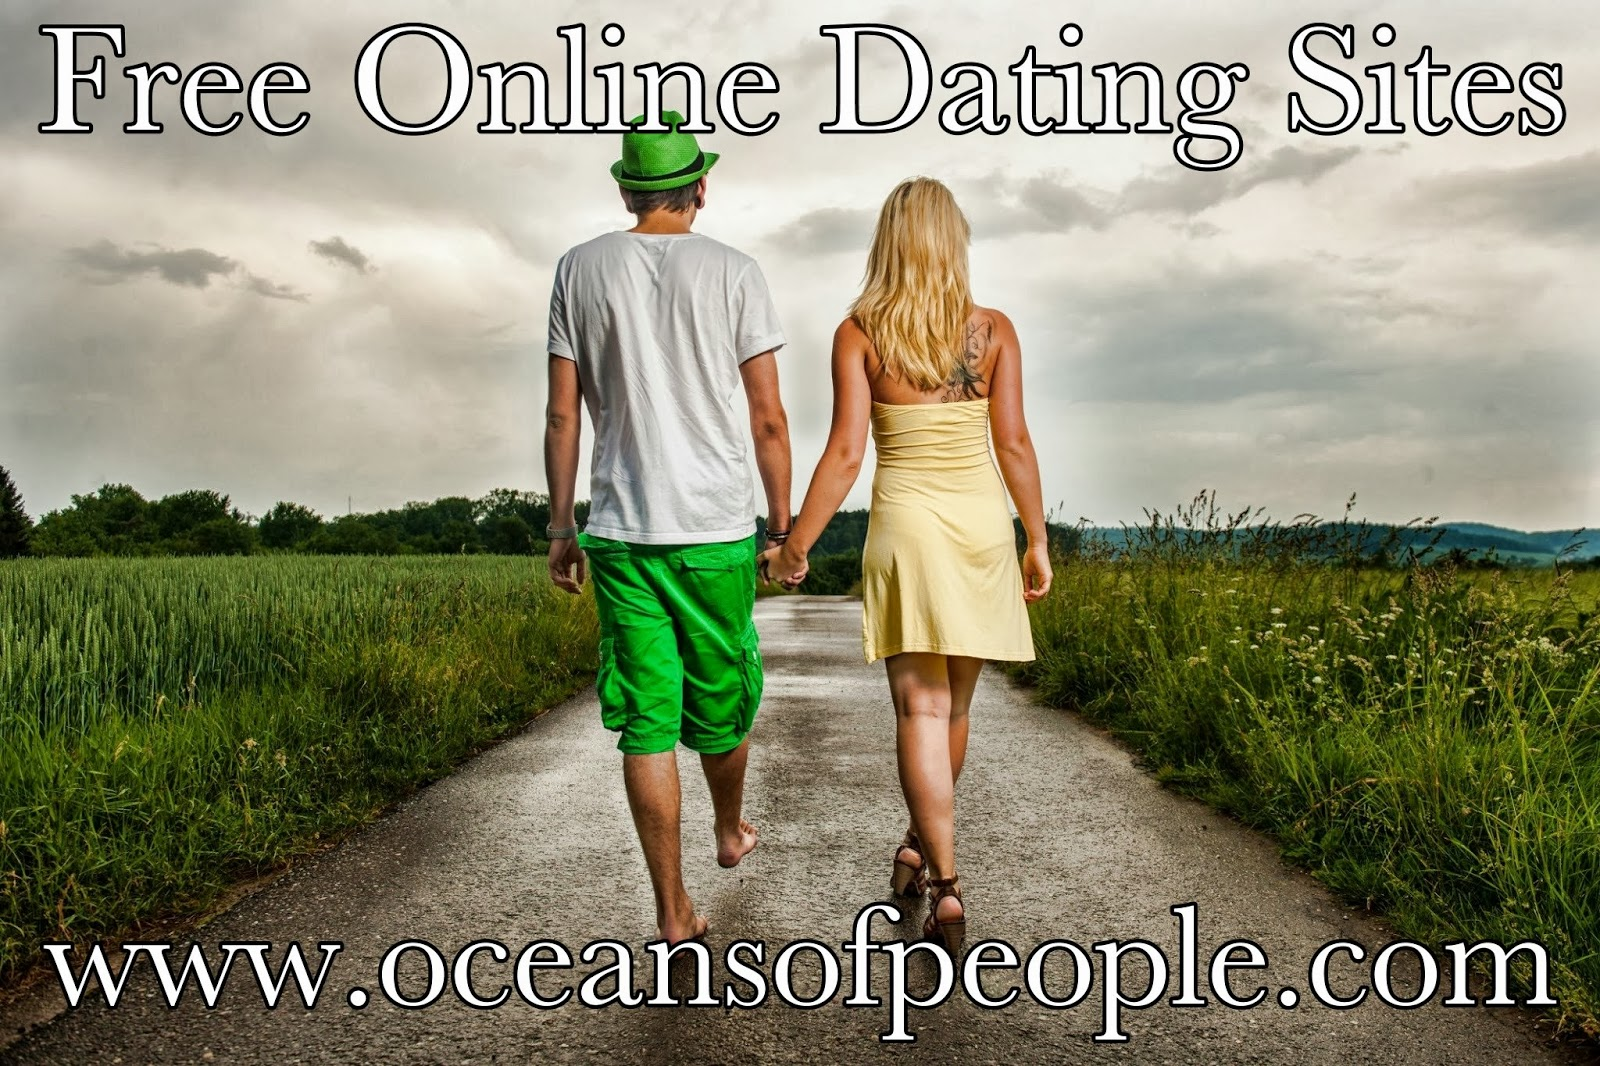 List of free dating sites online